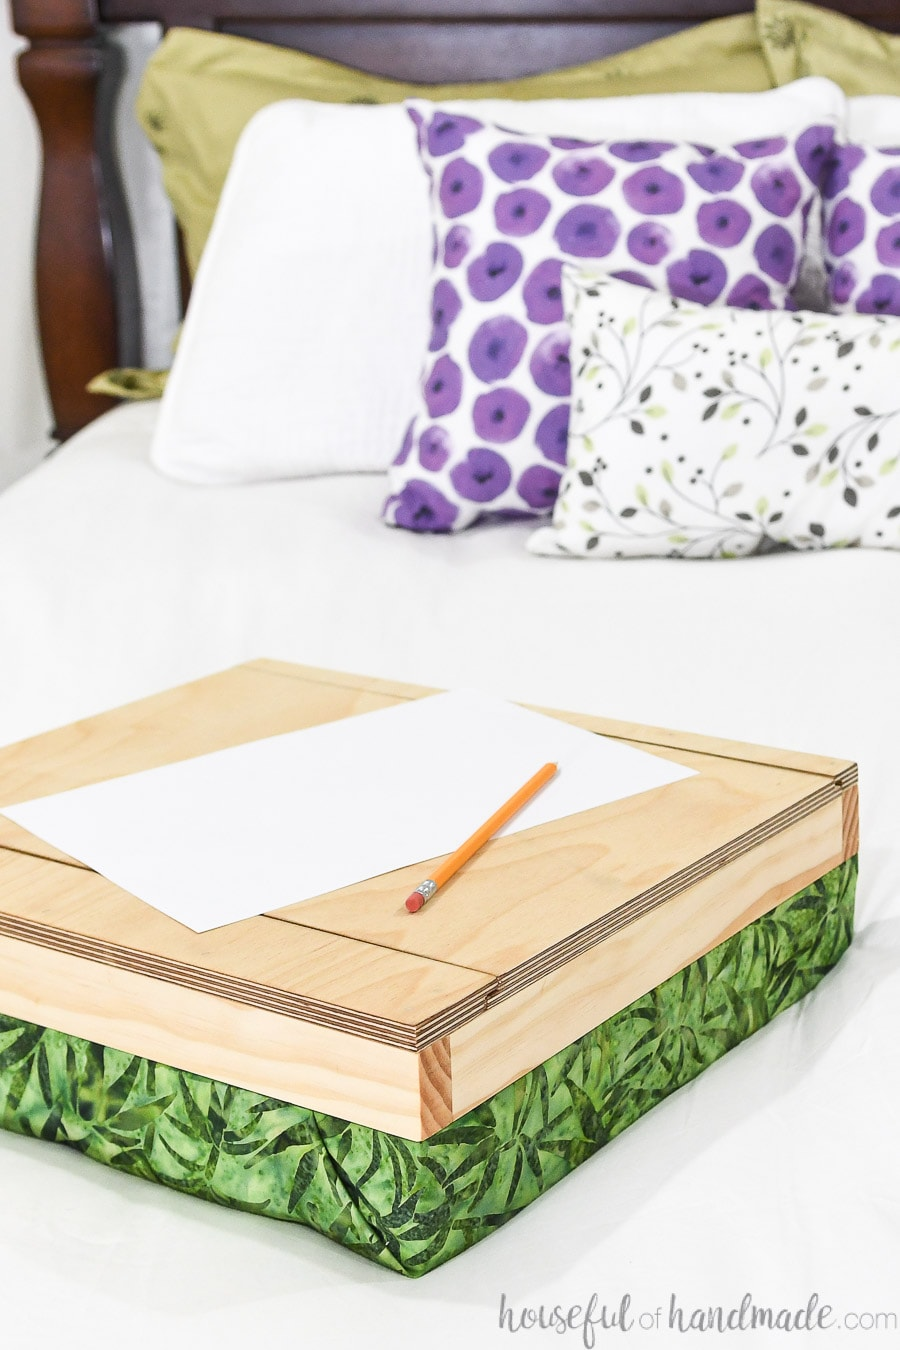 DIY lap desk with cushion covered in green leaf print on a bed.